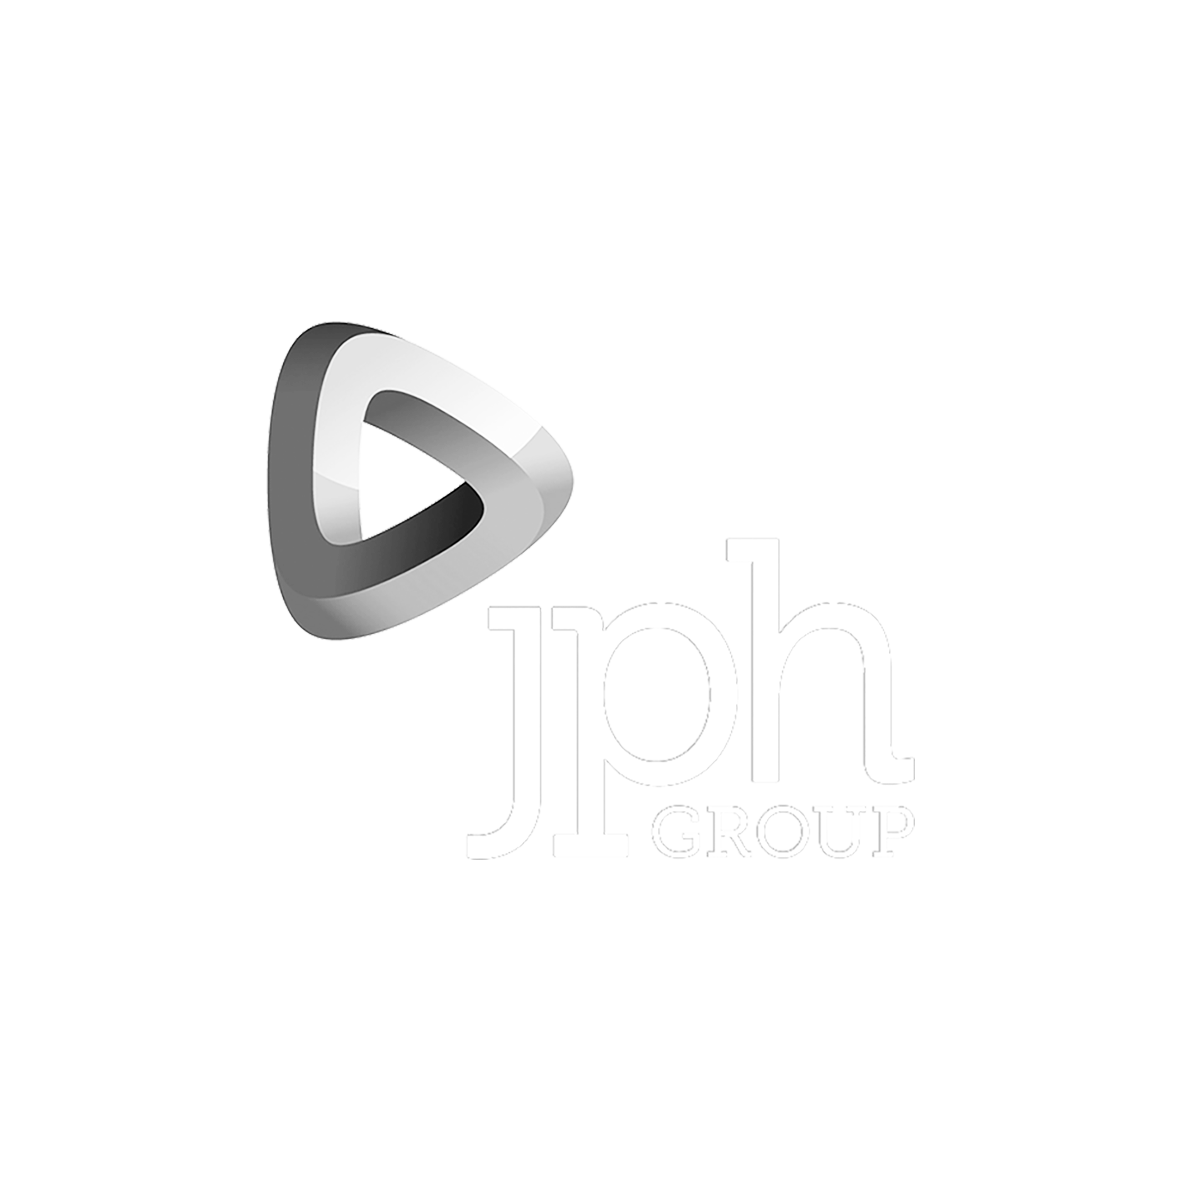 JPH-Group-logo-BW